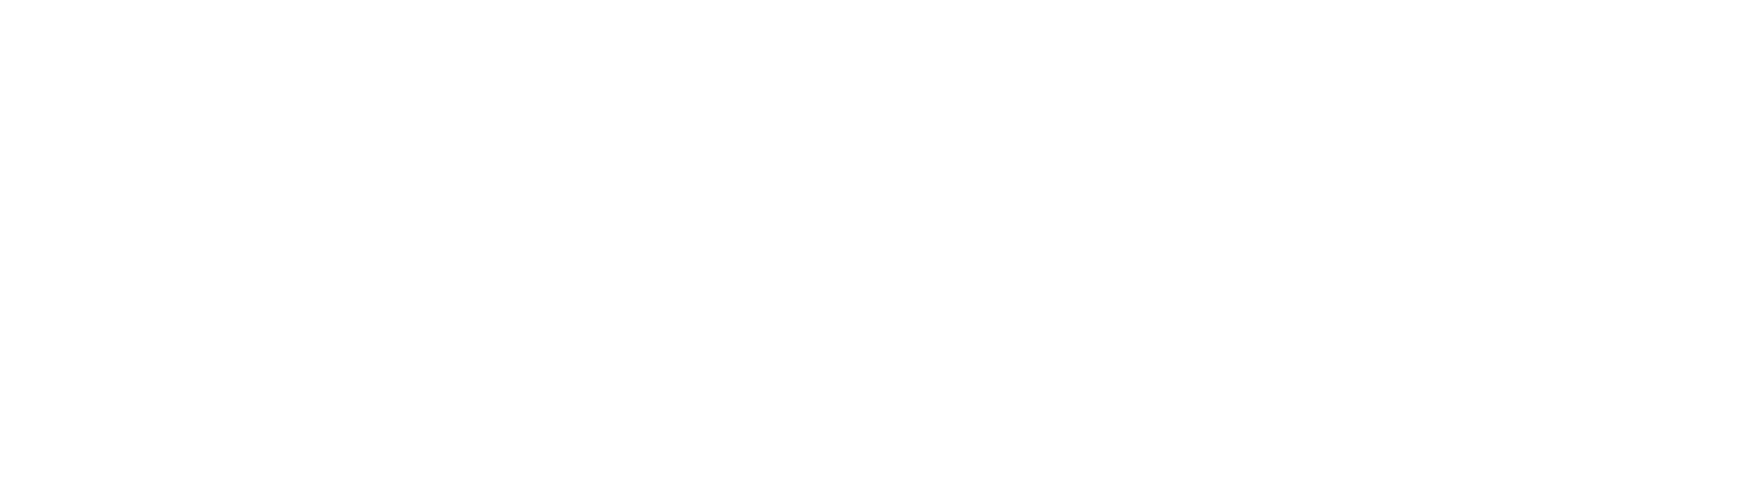 Agile Digital Strategy Logo